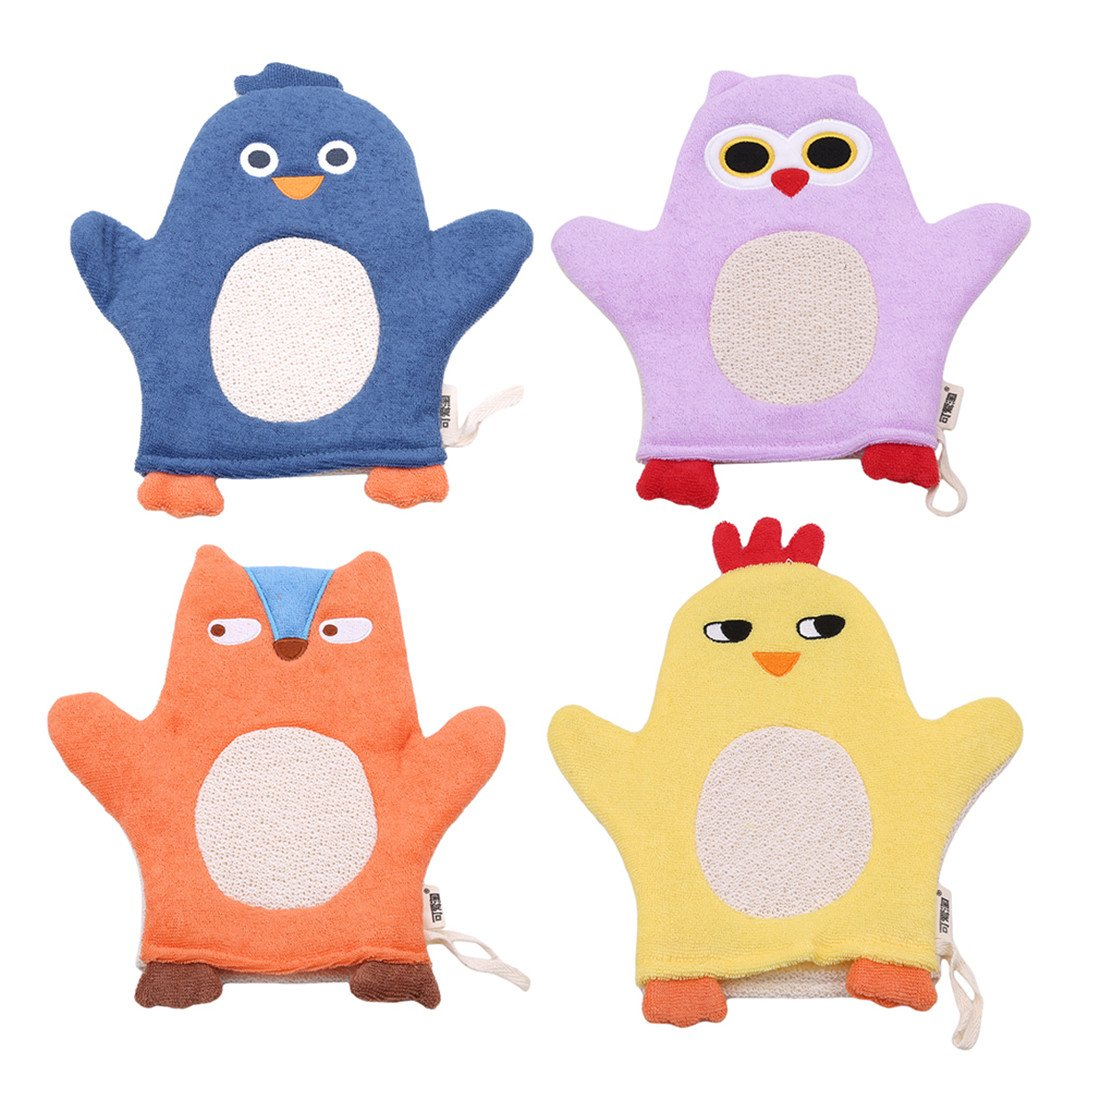 Yesiidor Animal Bath Glove Puppet Style Wash Mitts For Toddler Soft Baby Bath Gloves Baby Bath Towel